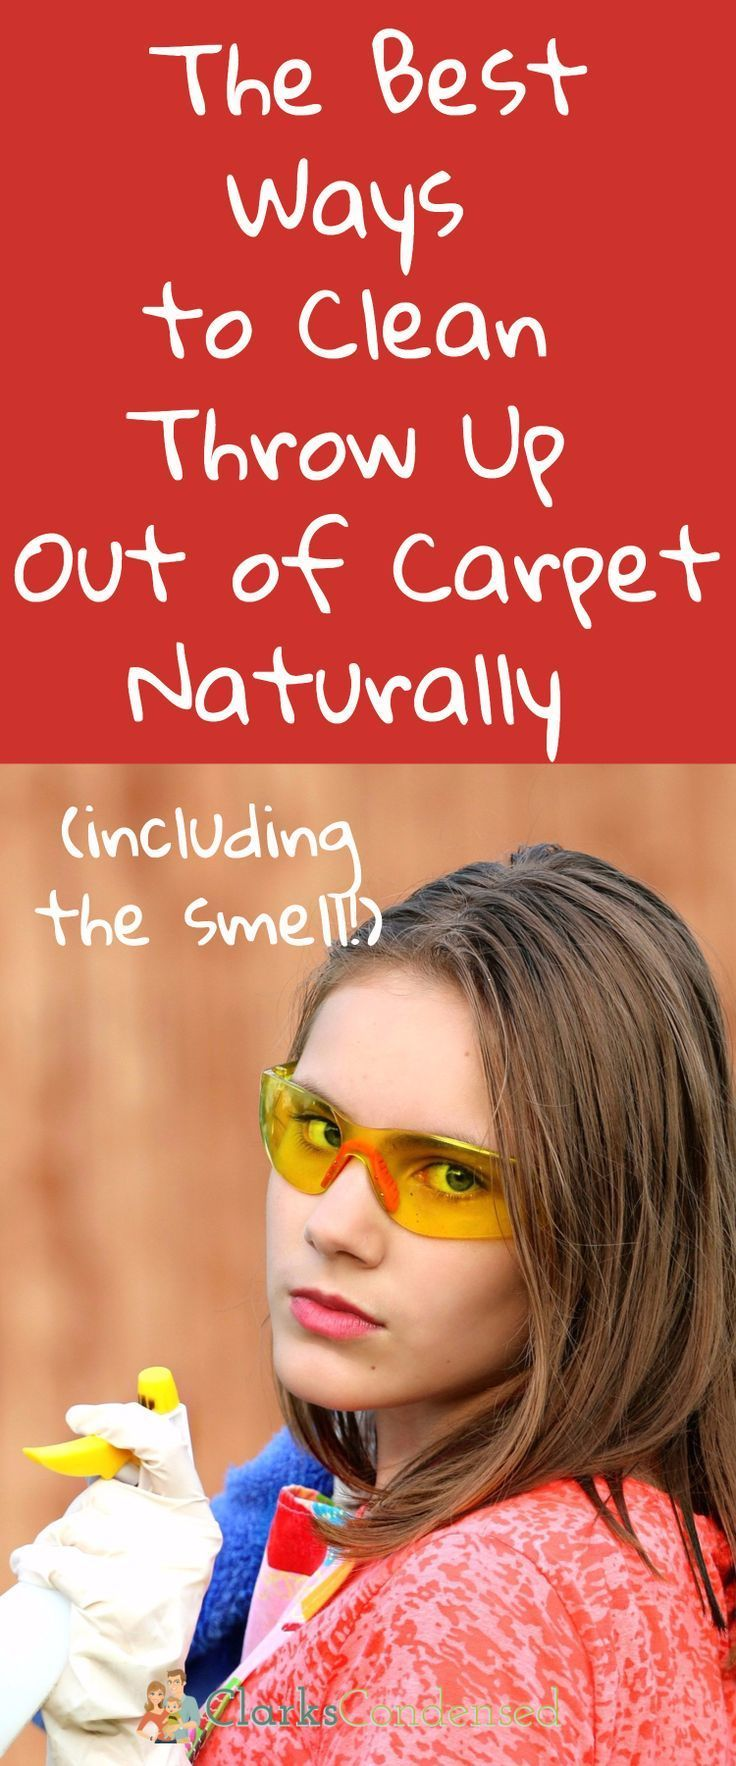 How to Clean Throw Up Out of Carpet Naturally (Including